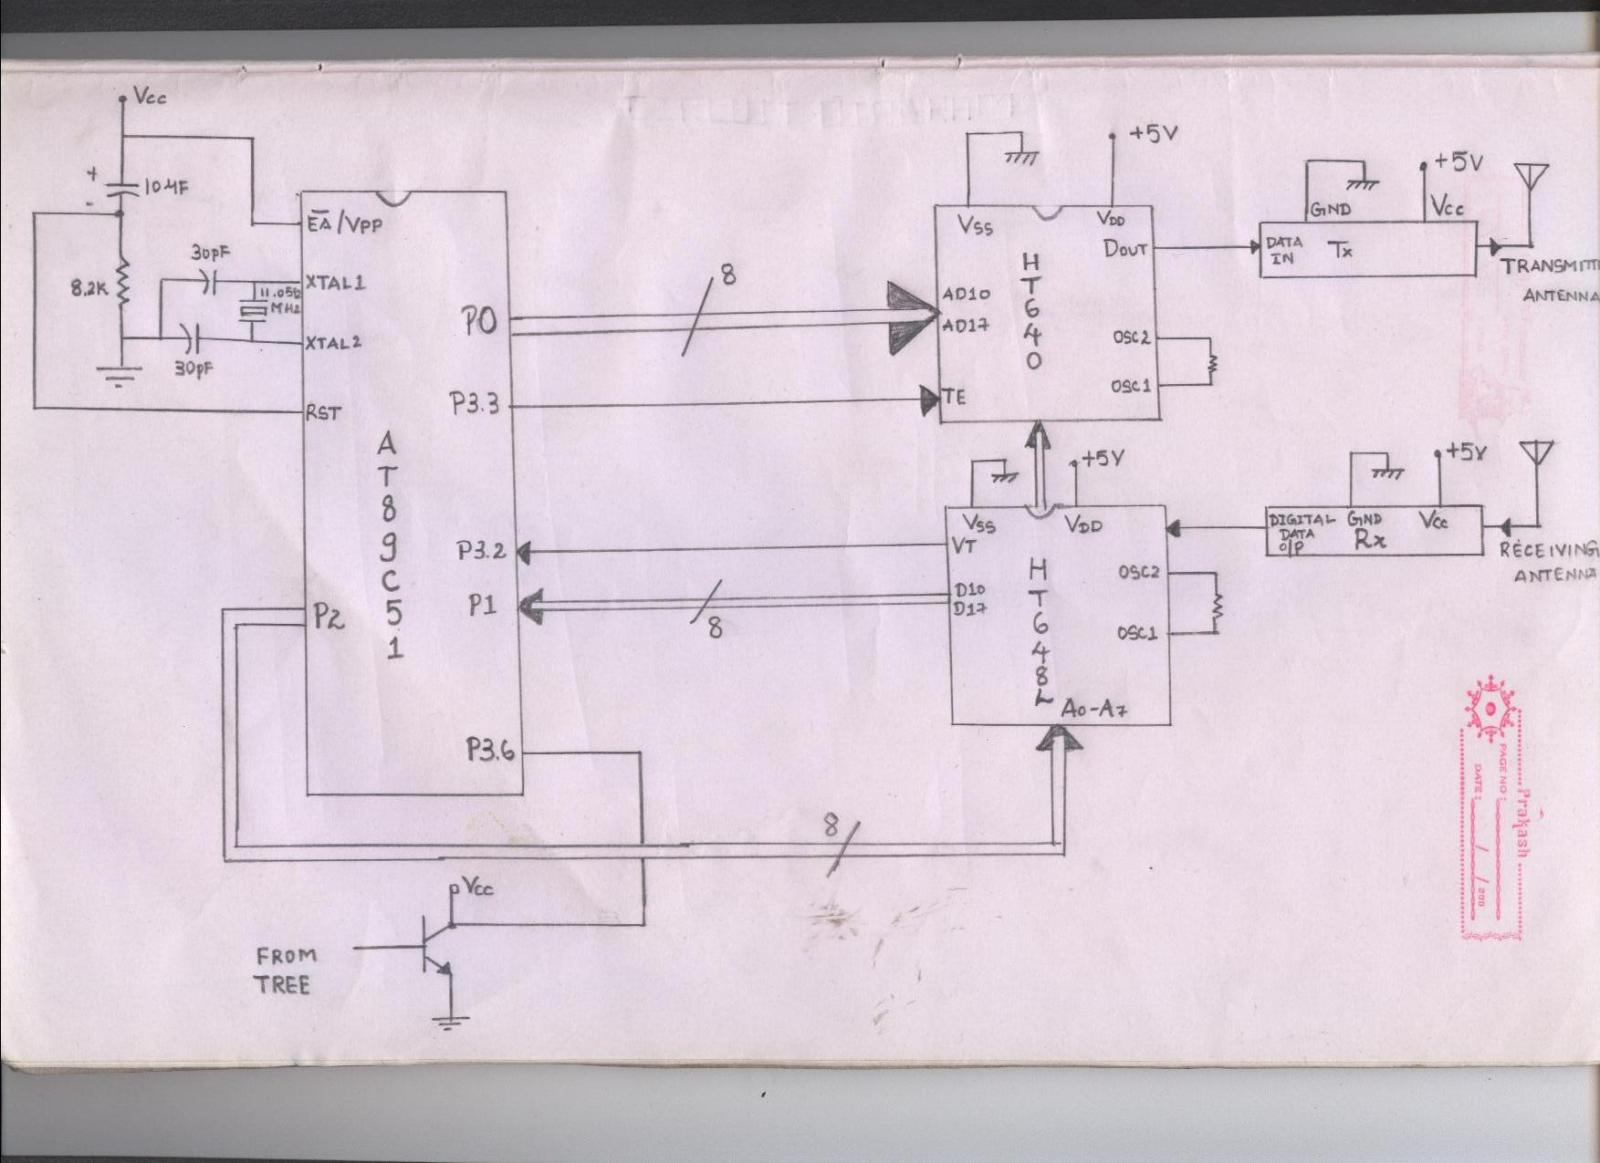 microcontroller 8051 rf tx rx encoder decoder - schematic